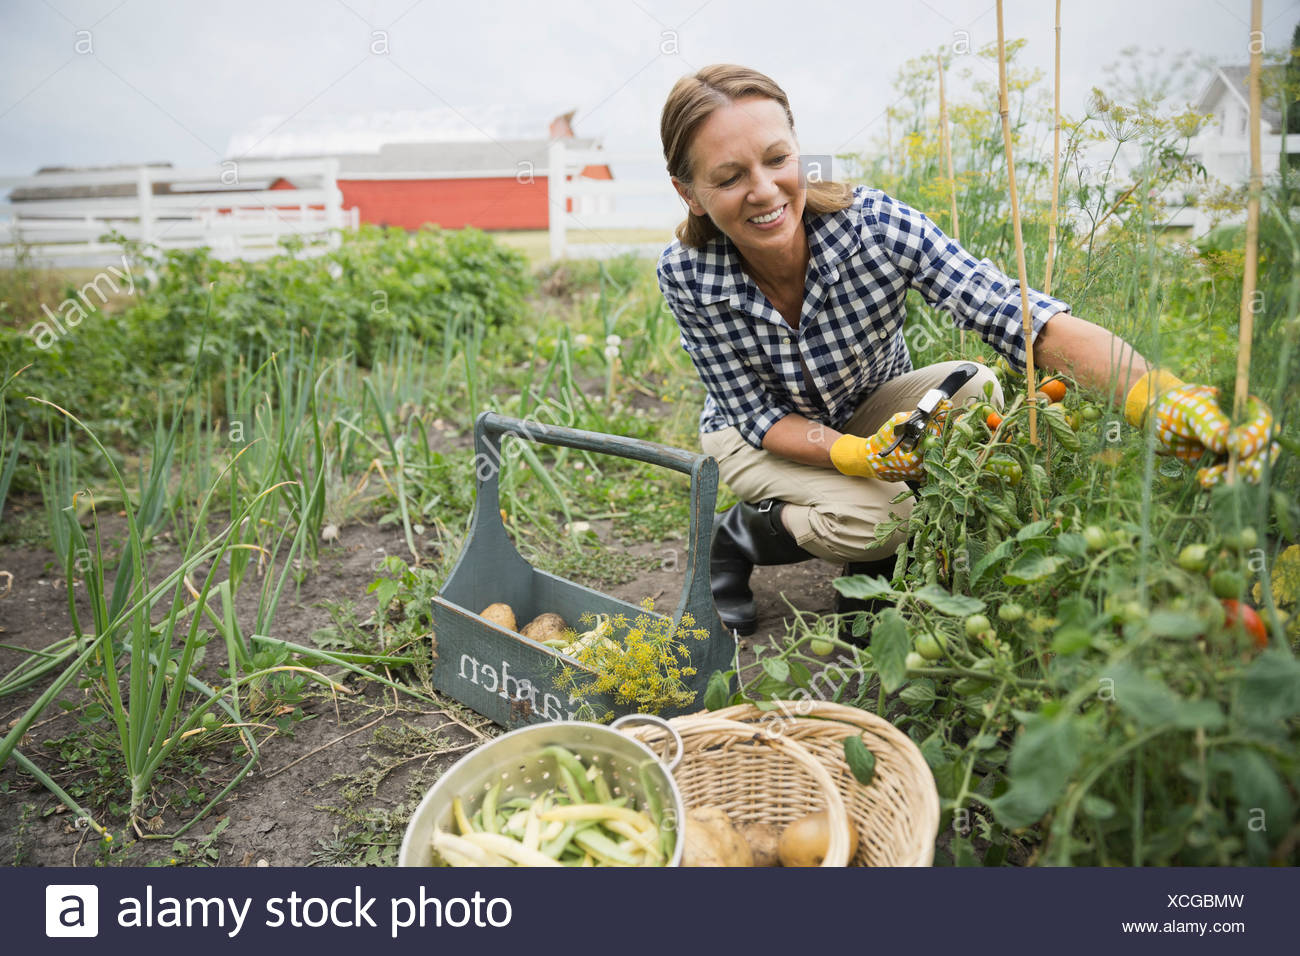 Smiling senior woman harvesting vegetables - Stock Image